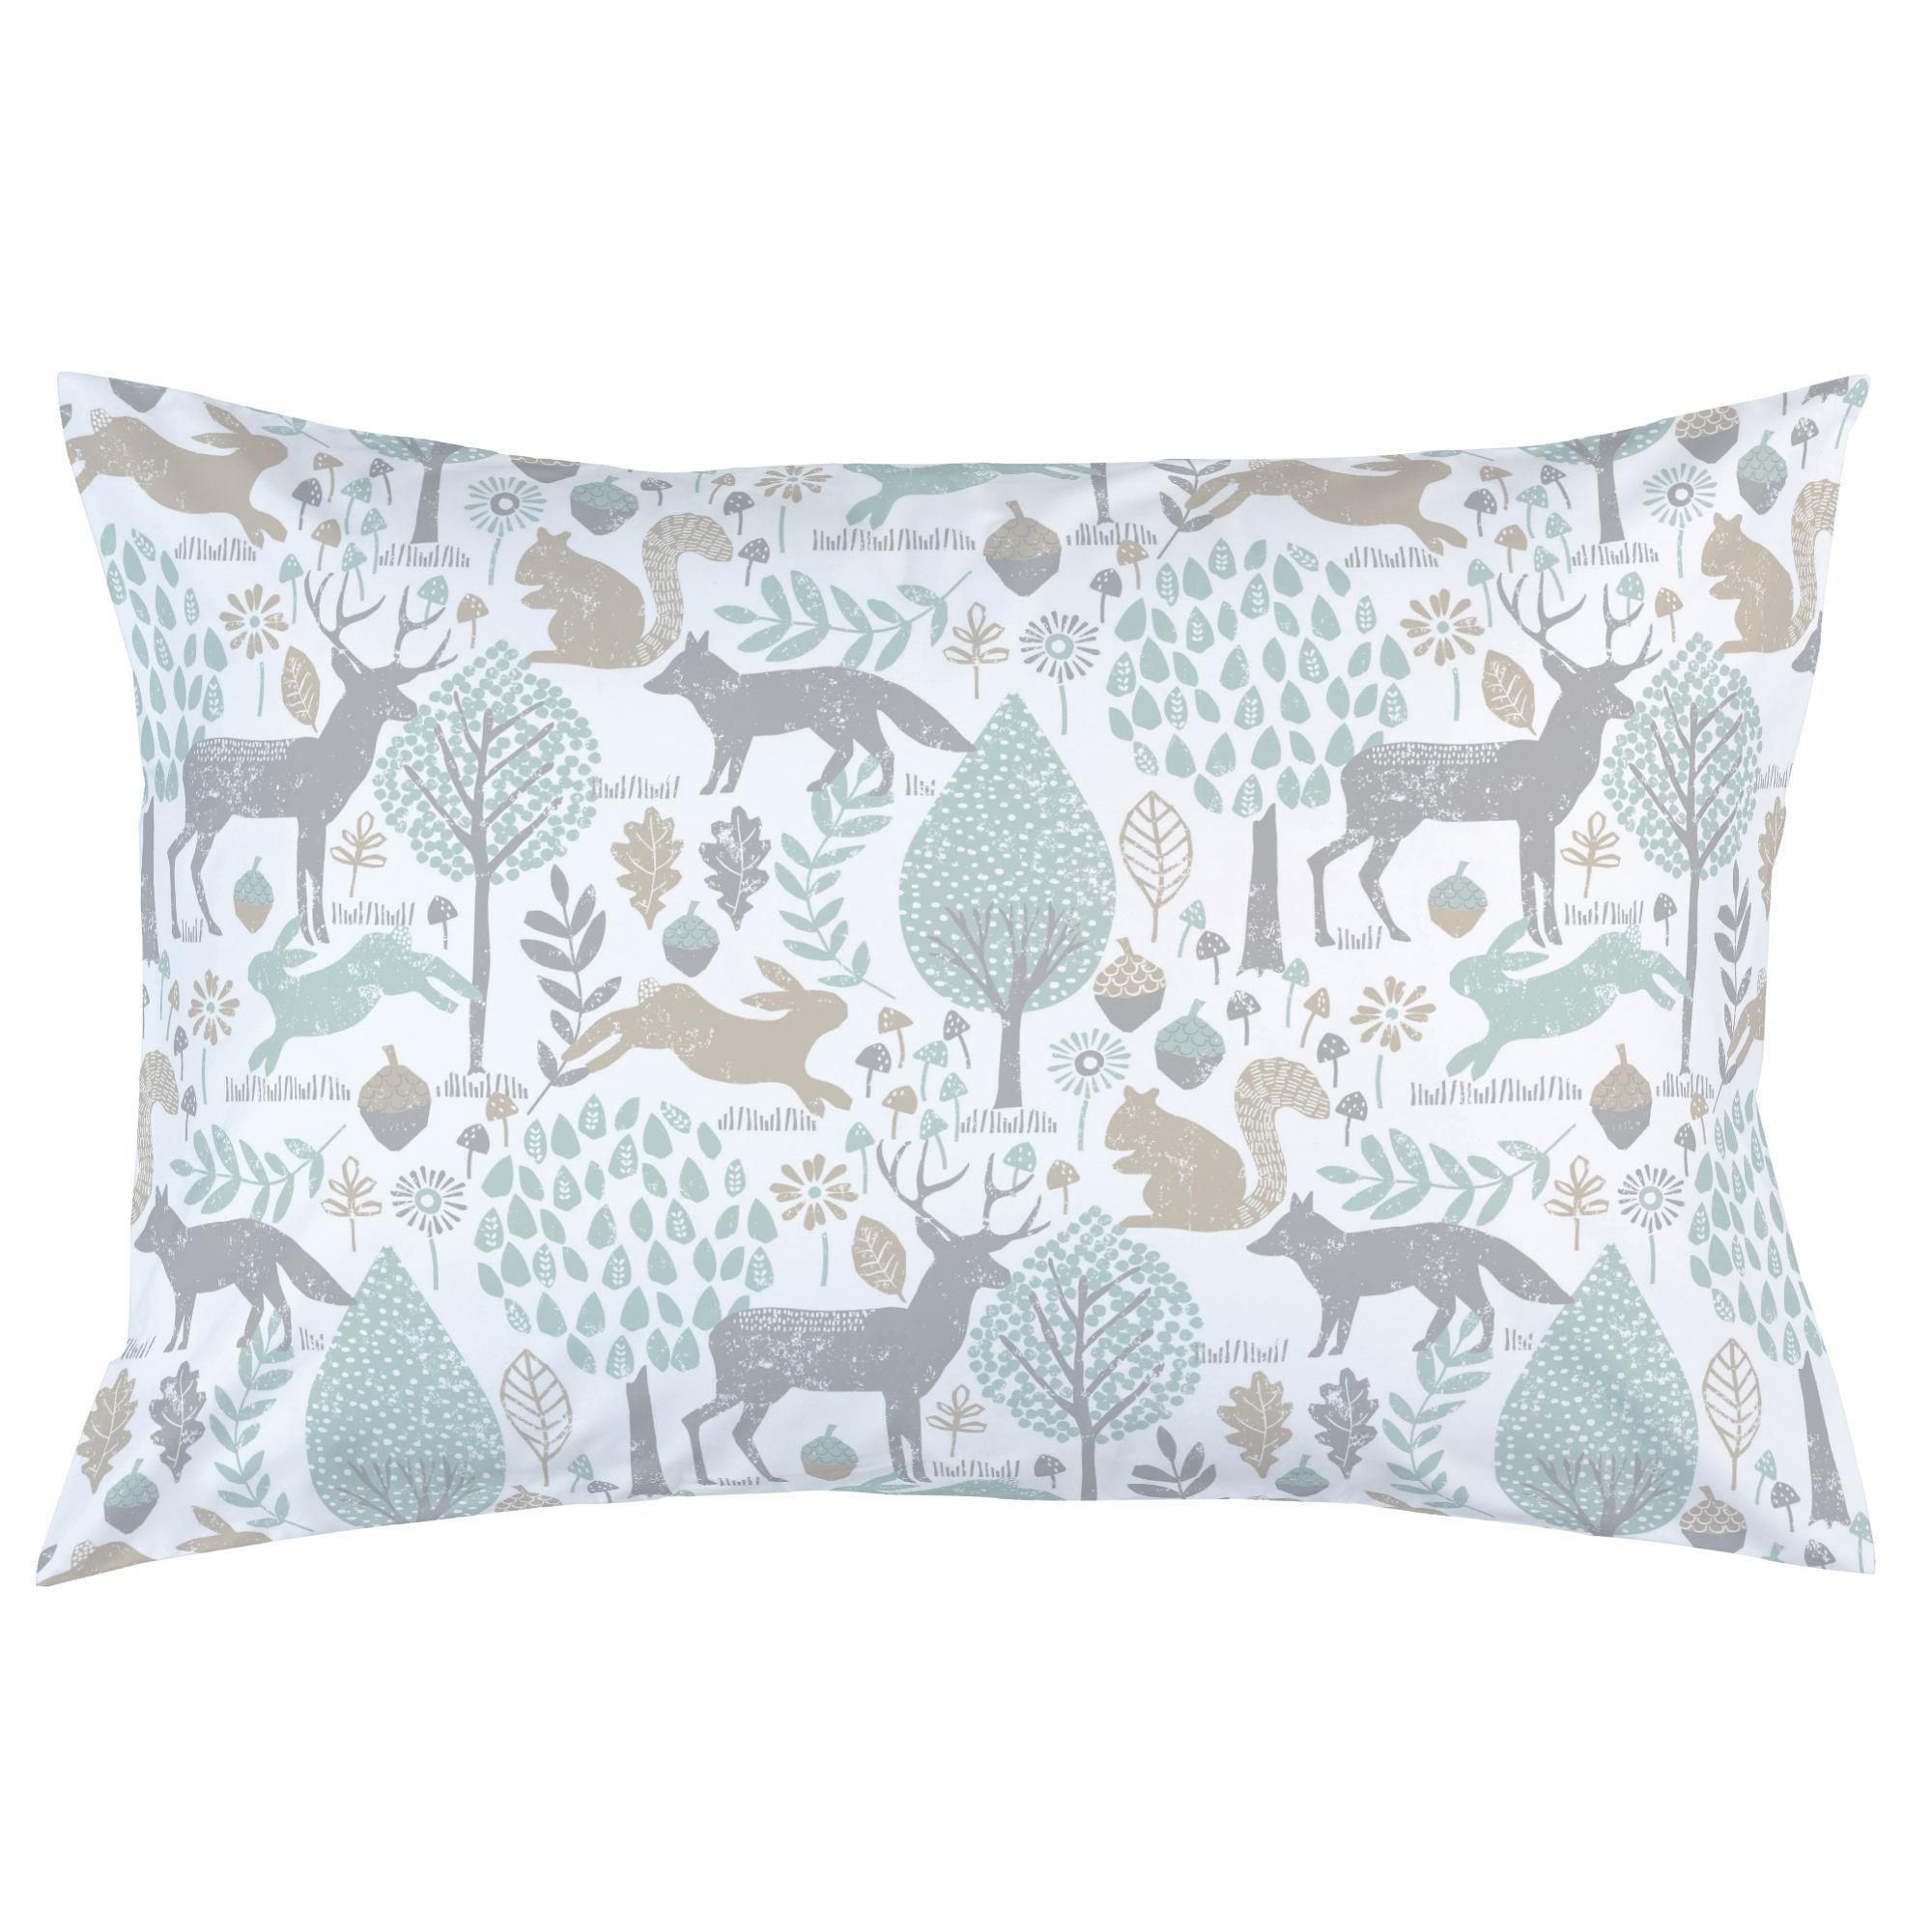 Gray and Taupe Woodland Animals Pillow Case